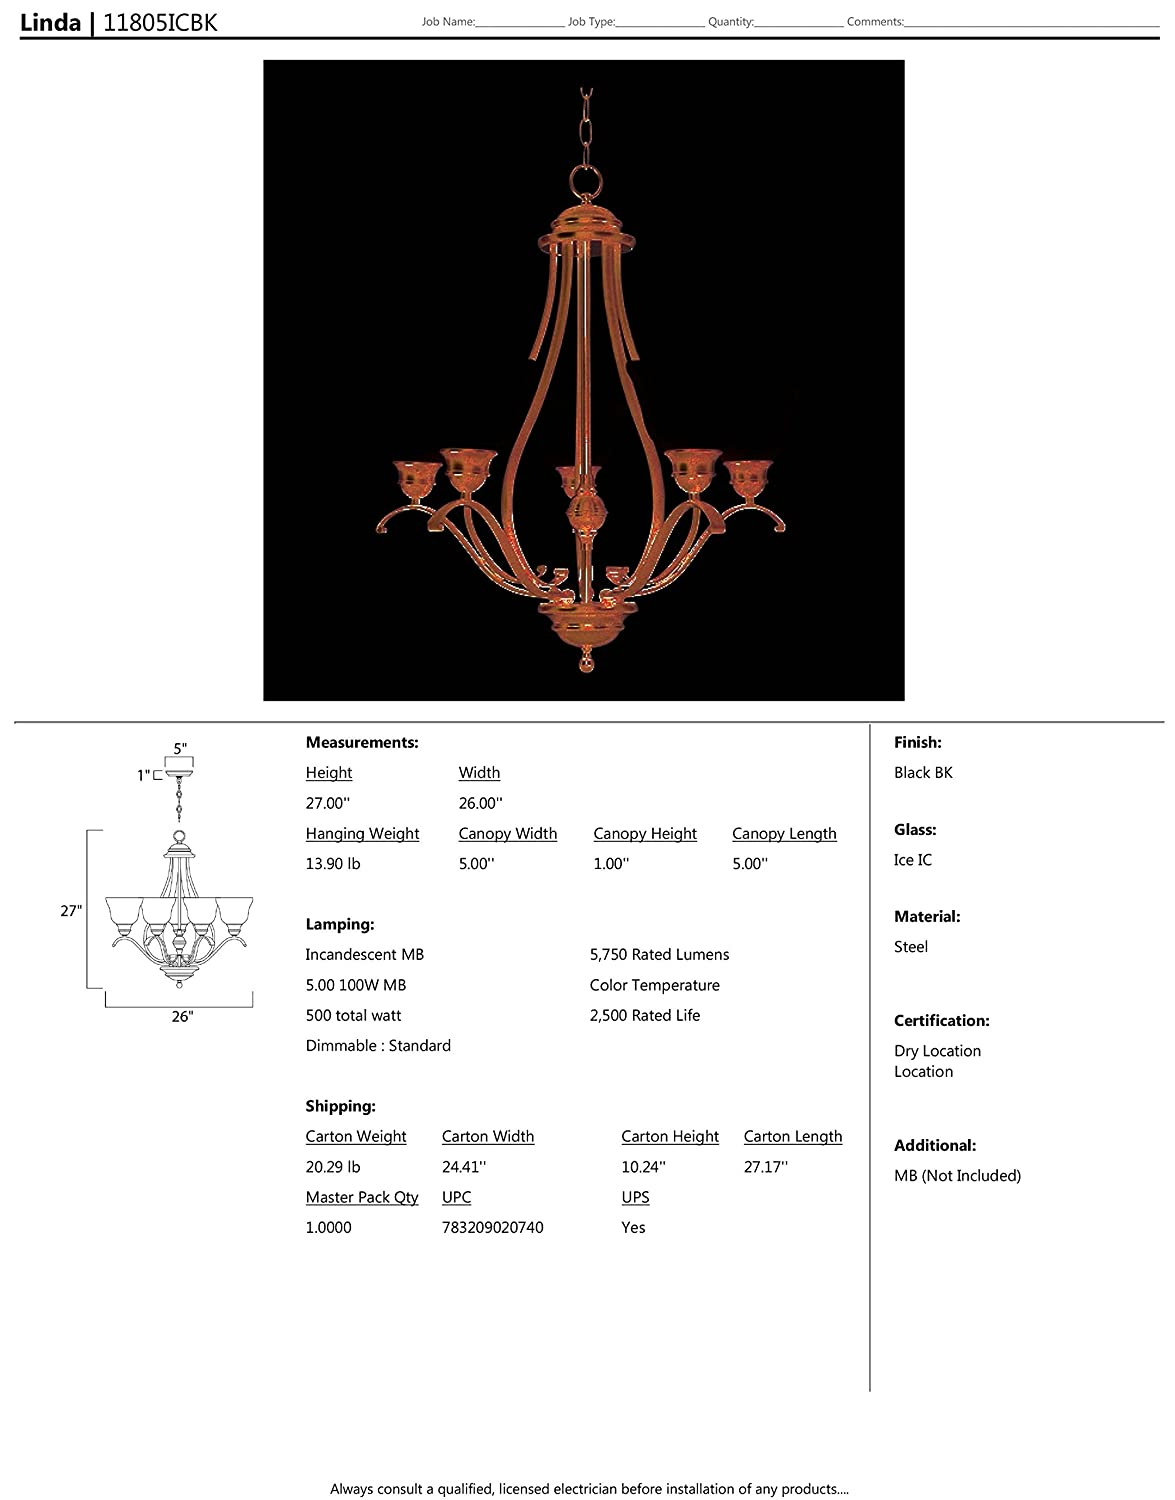 Standard Dimmable Maxim 11815ICBK Linda 5-Light Chandelier Opal Glass Shade Material MB Incandescent Incandescent Bulb Dry Safety Rating 100W Max. Black Finish Ice Glass 1150 Rated Lumens Maxim Lighting